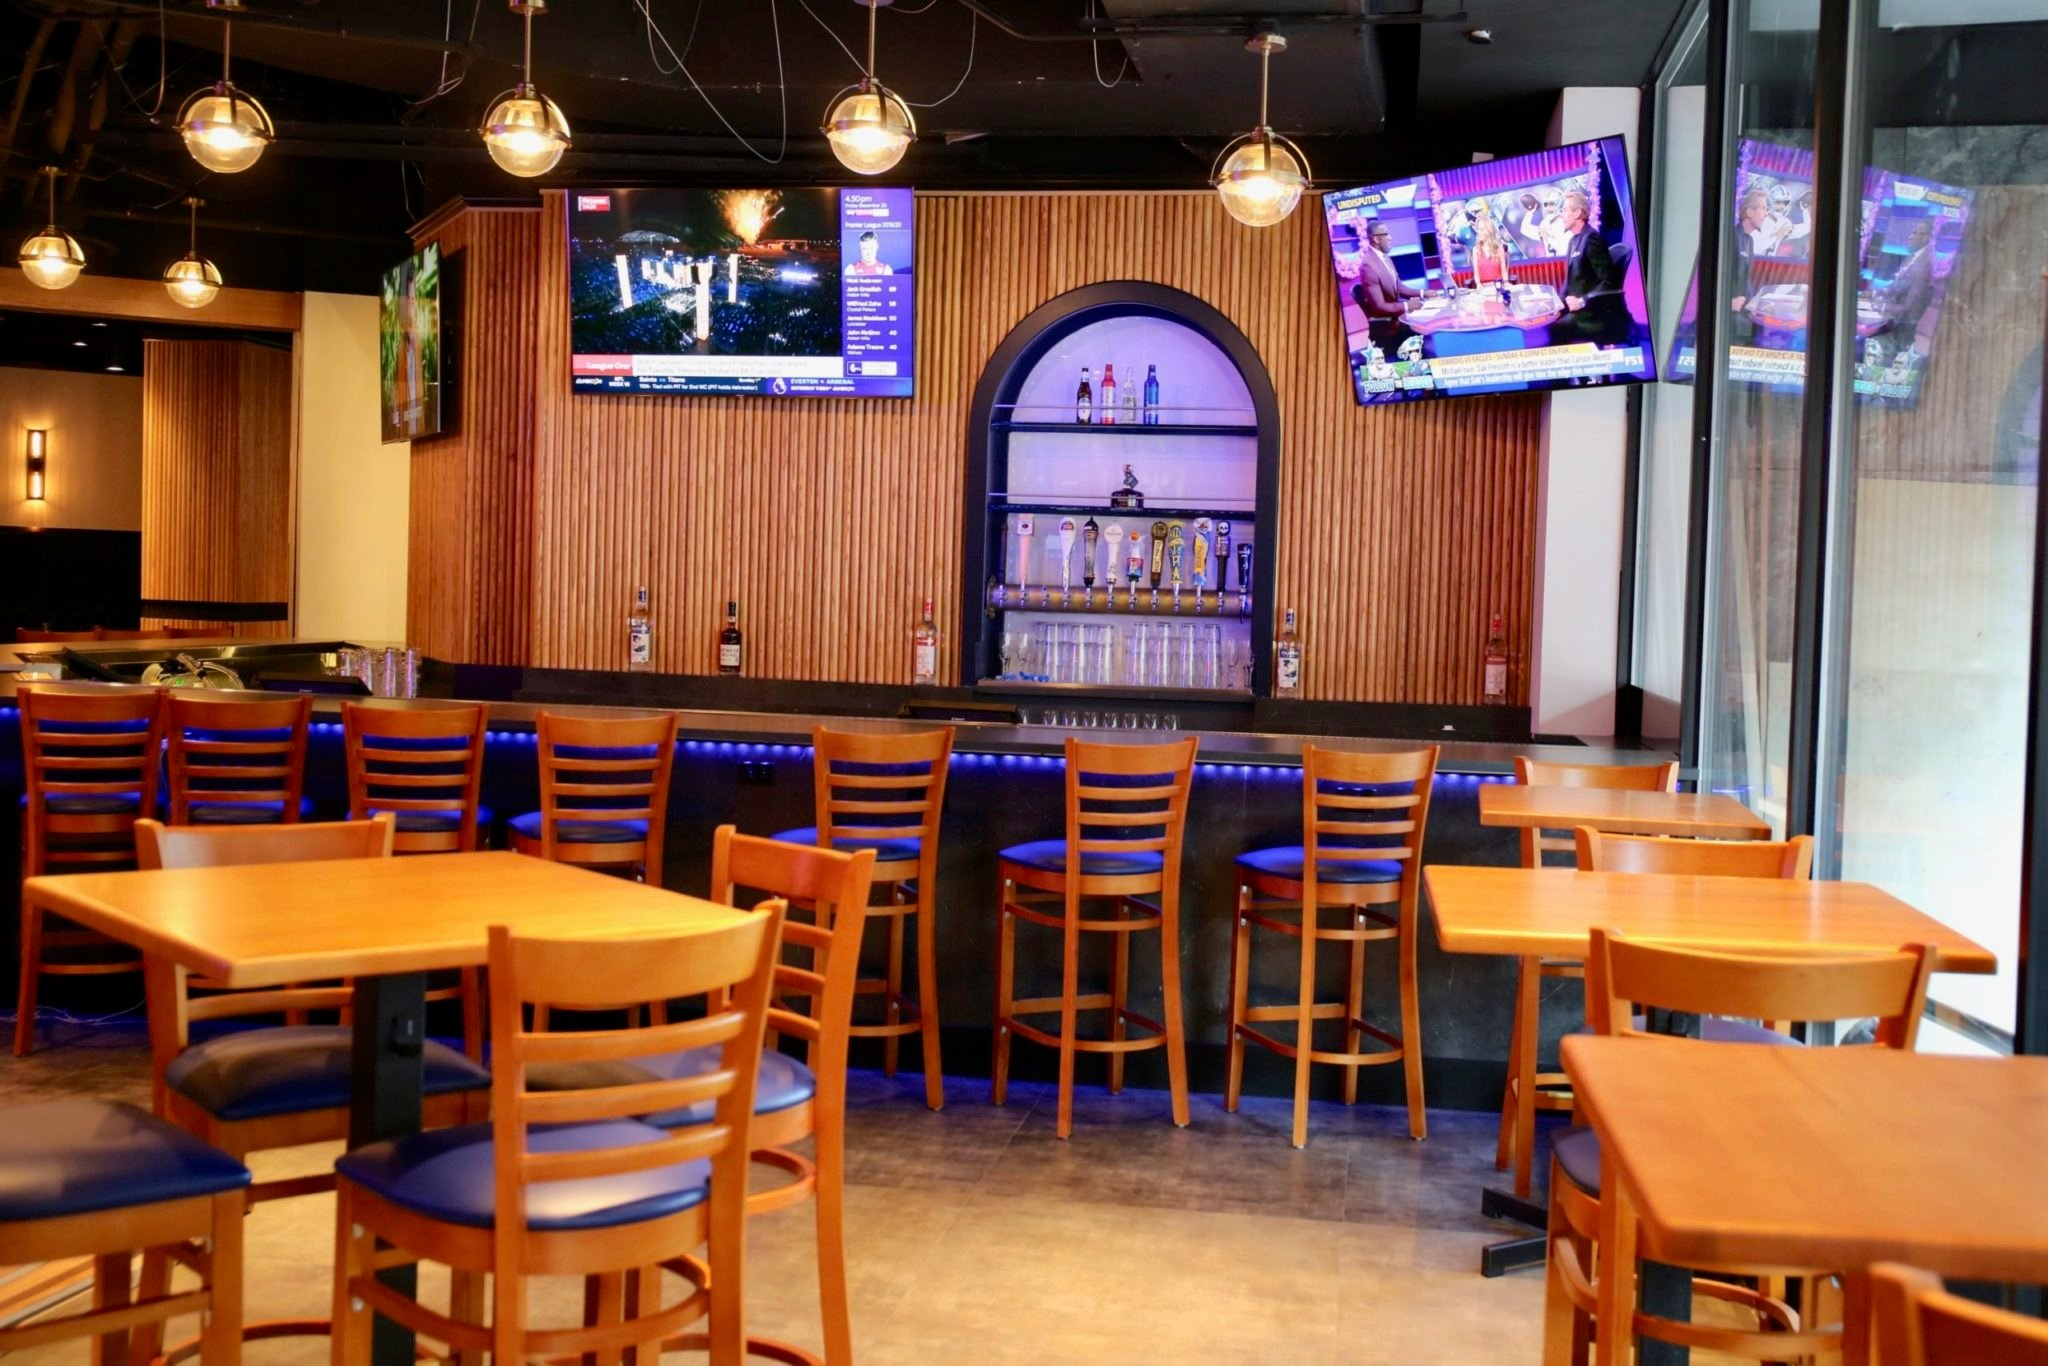 The Admiral opens today in Dupont Circle with 18 flat screen TVs and daily happy hour. Photo by Evy Mages.